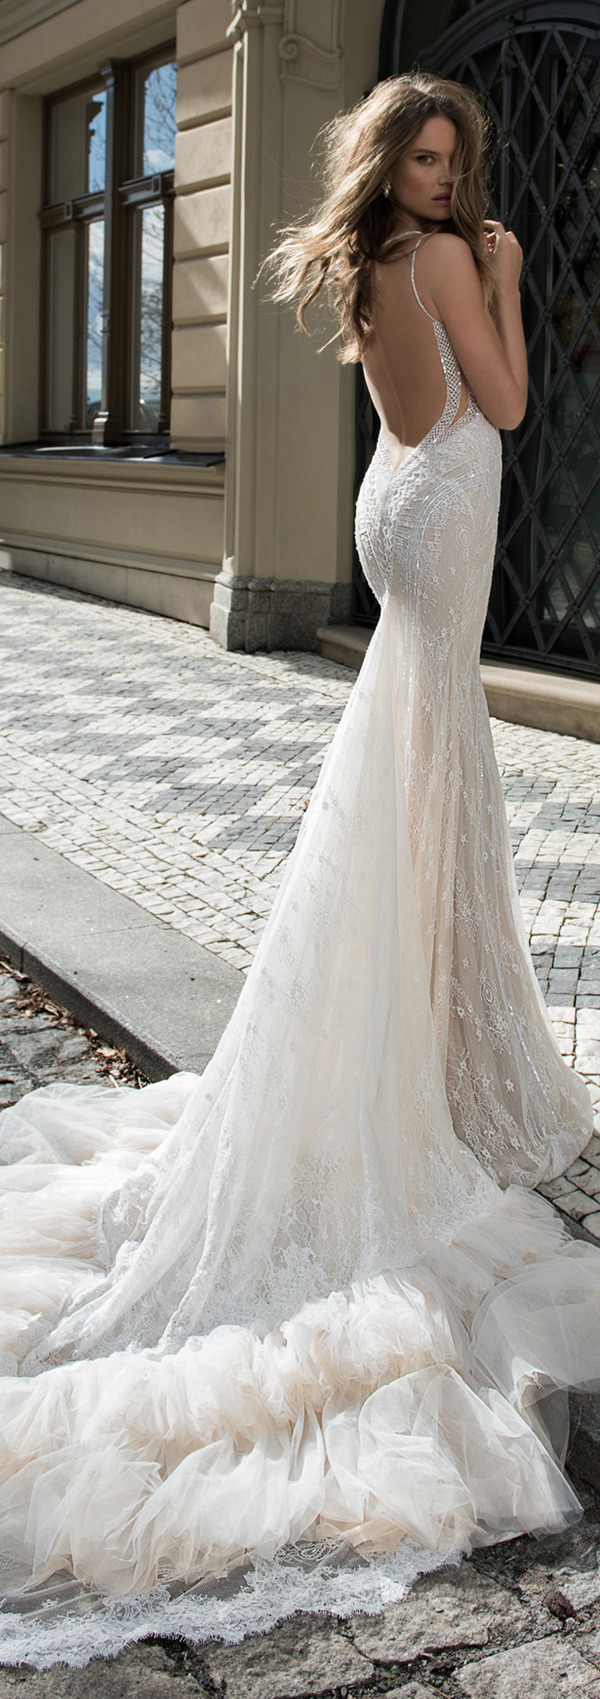 Berta bridal wedding dresses for fall 2015 elegantweddinginvites berta bridal backless long train wedding gowns junglespirit Choice Image